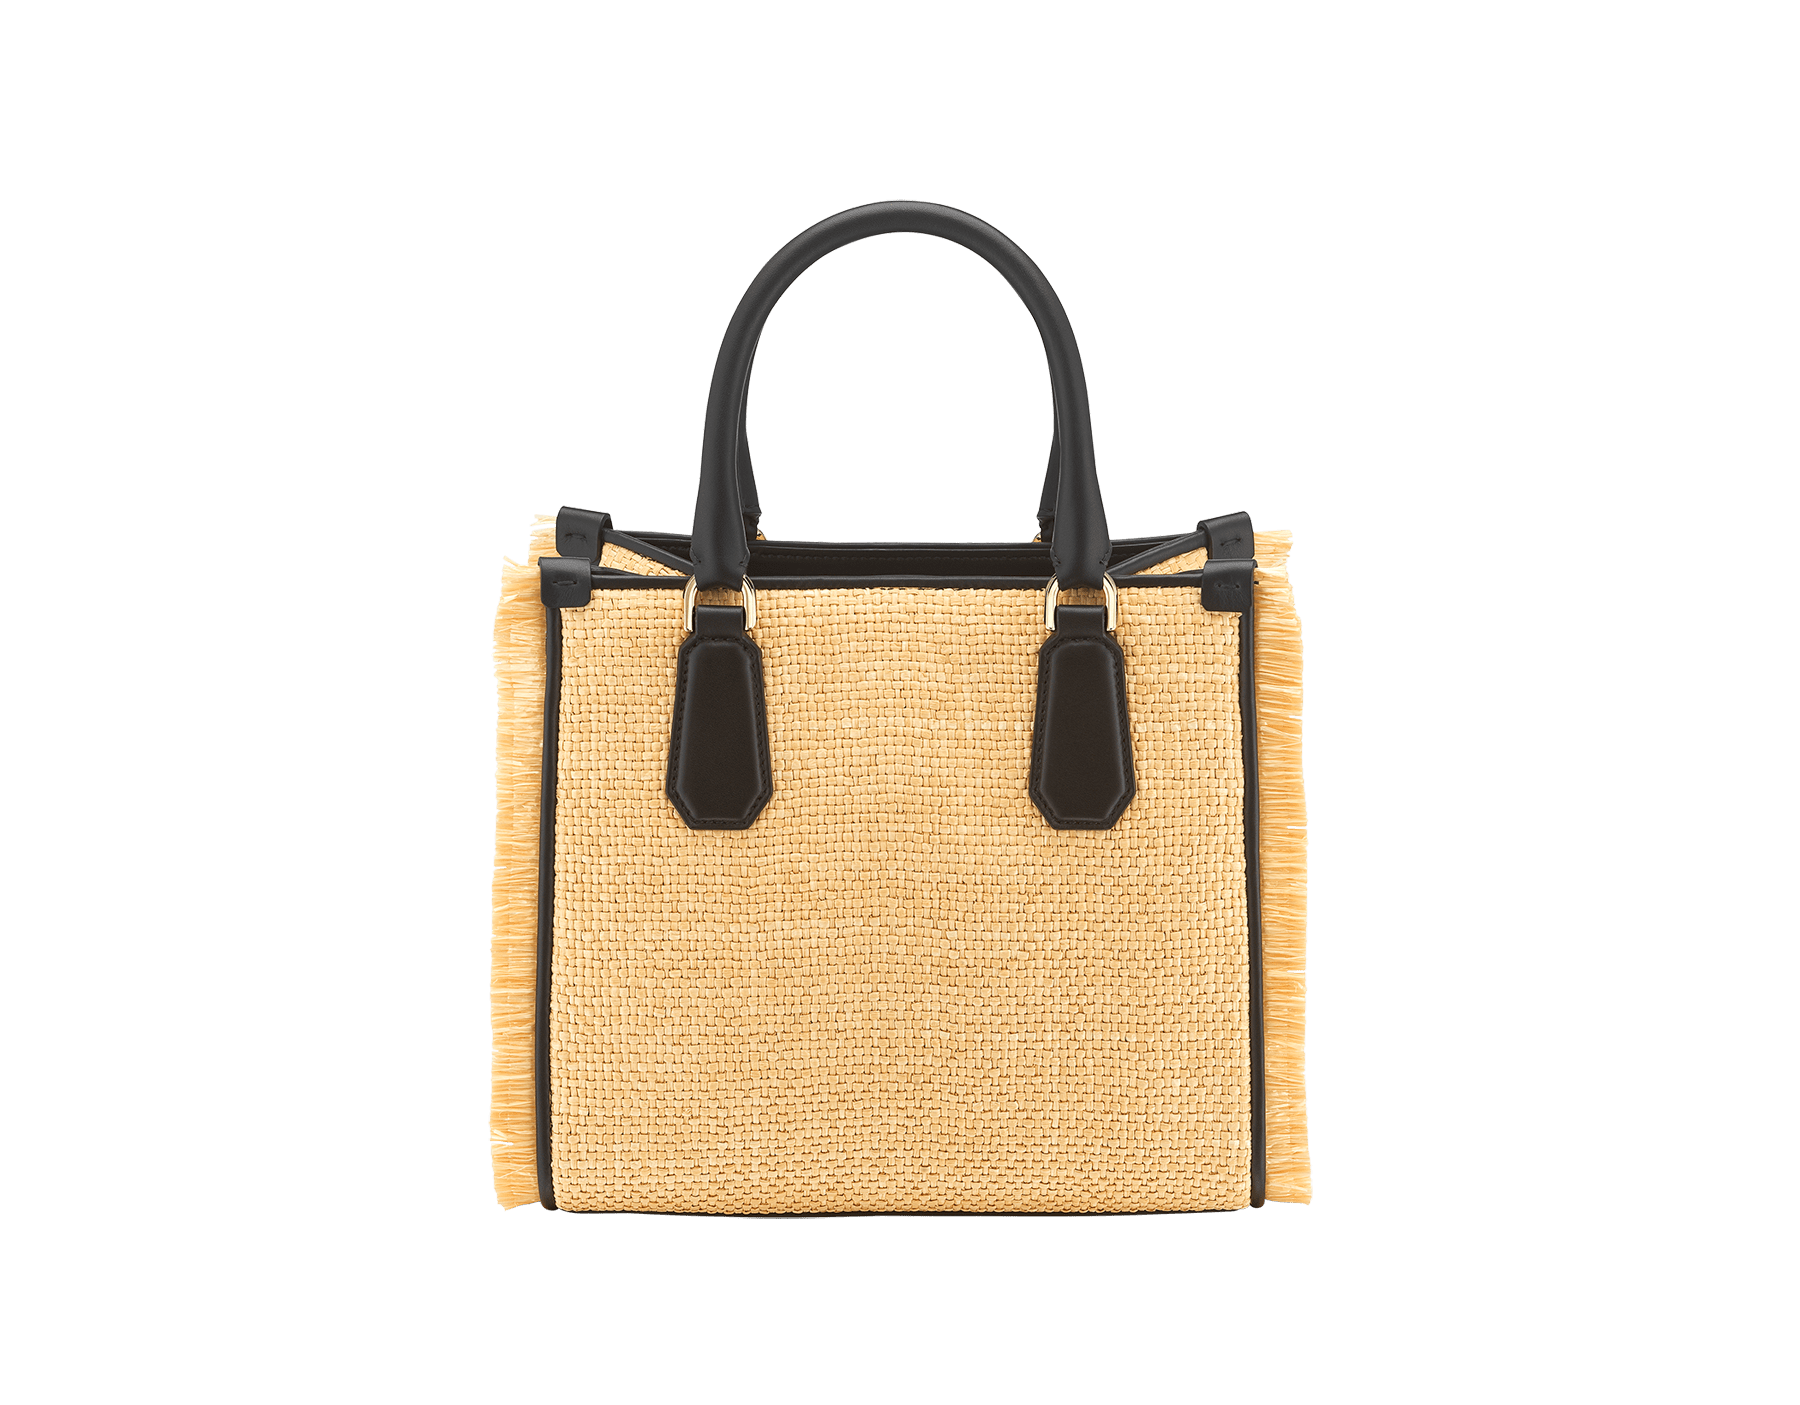 """Bvlgari Logo"" tote bag in beige raffia enhanced with beige raffia fringes, and black grosgrain internal lining. Bvlgari logo featured with chain inserts on the black calf leather. 290953 image 3"